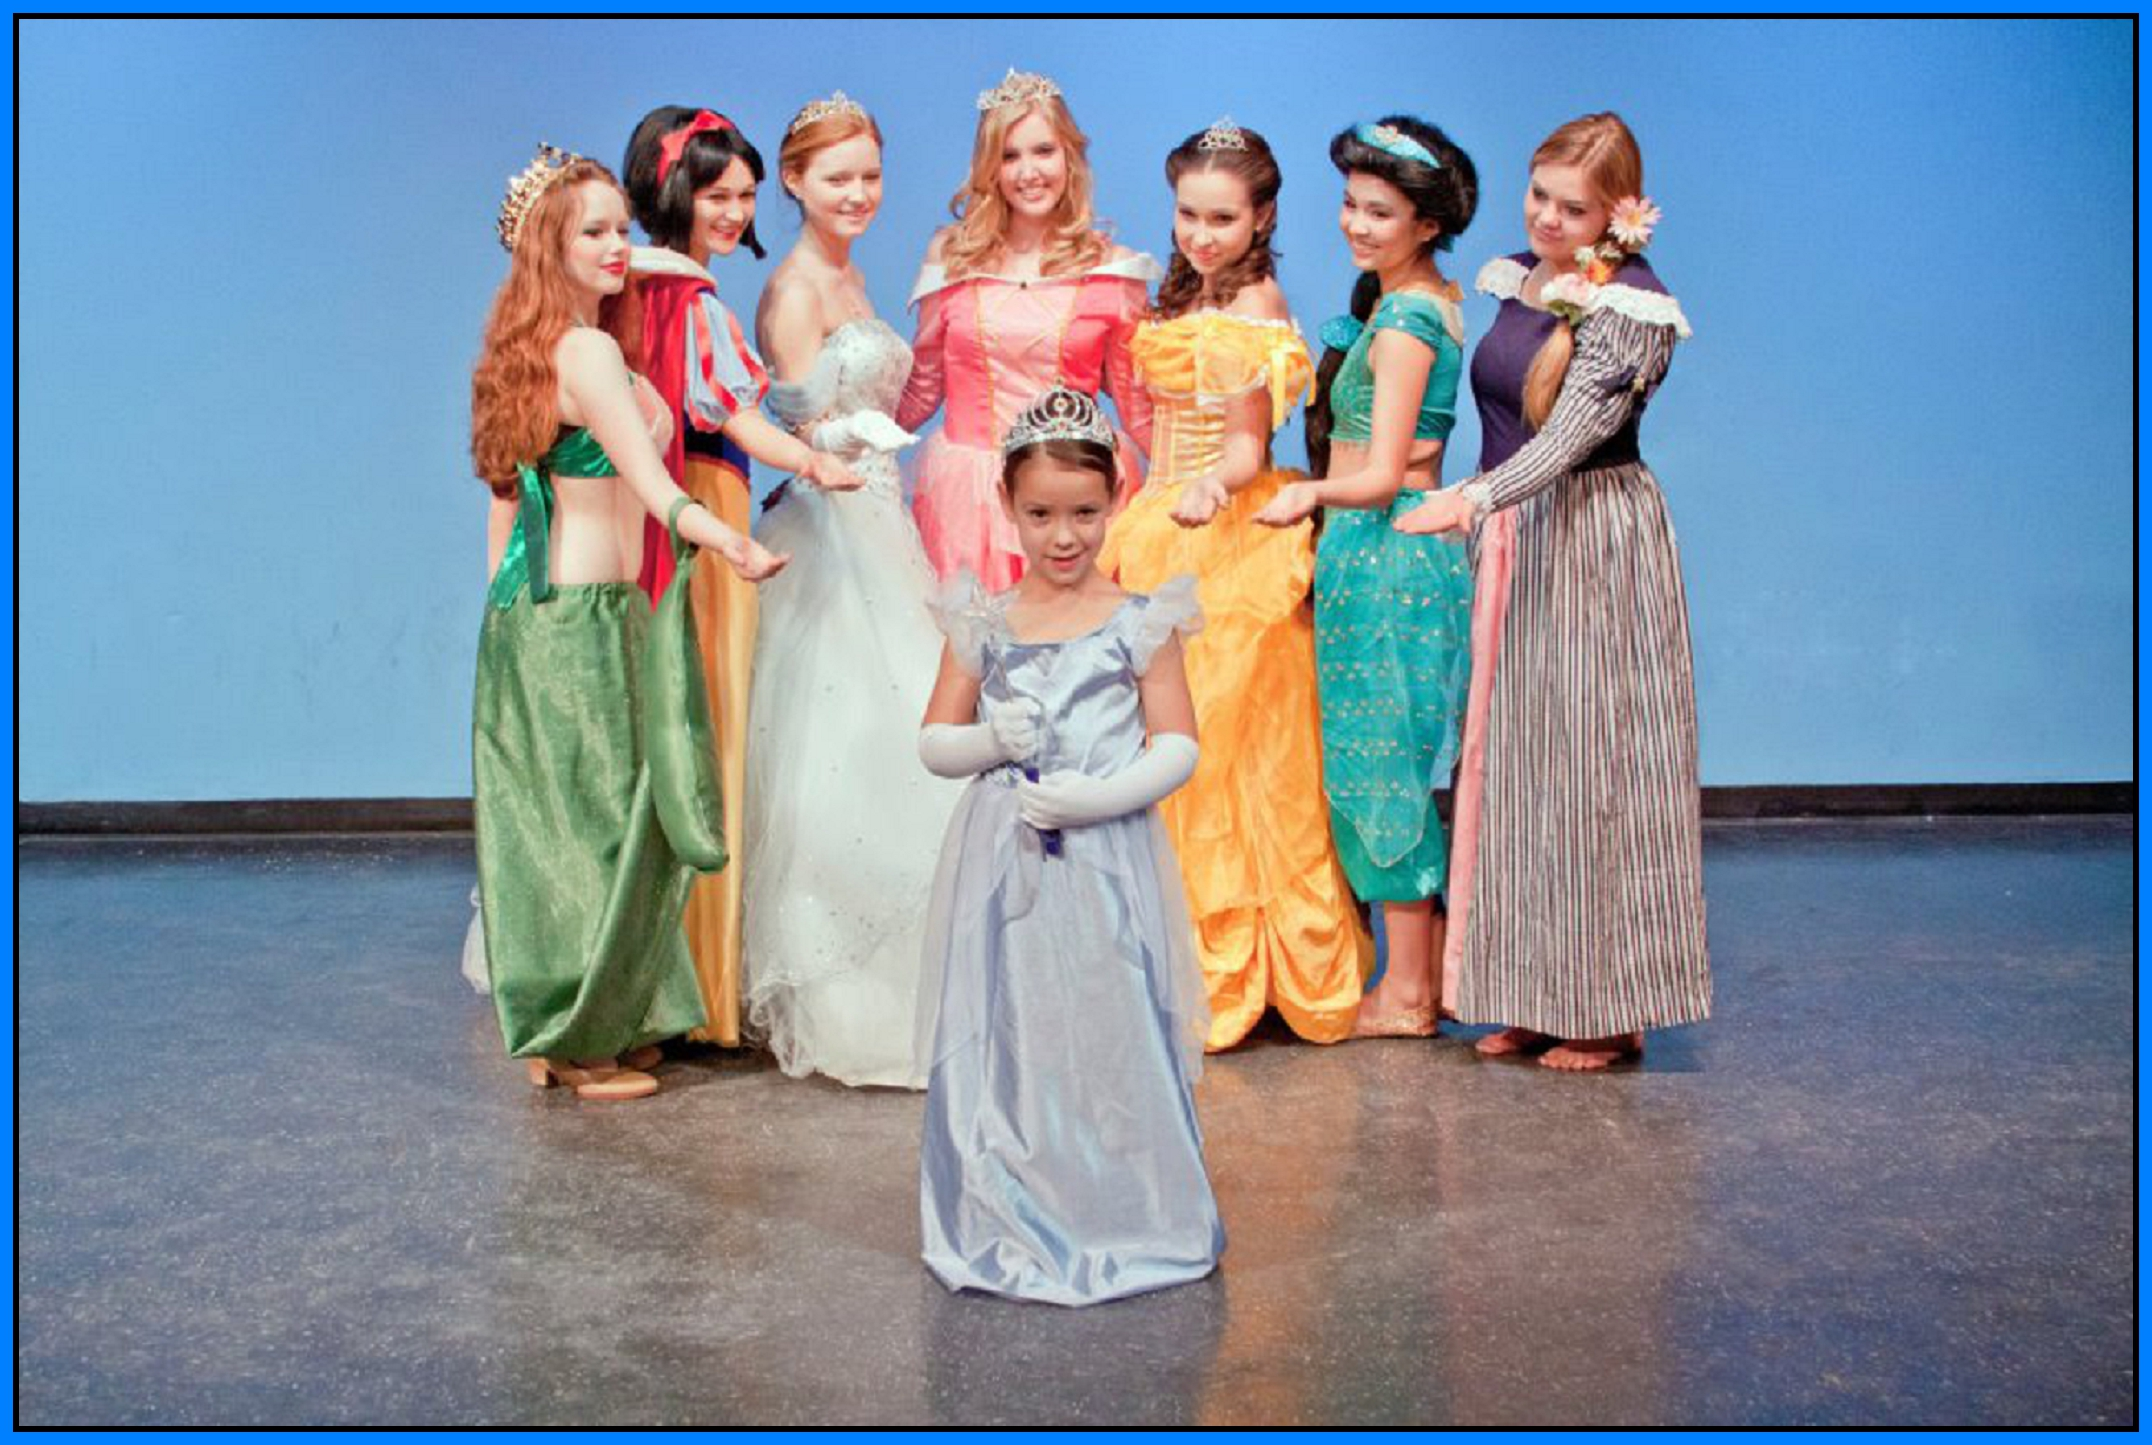 Dress up of cinderella - A Few Lucky Little Princesses Will Even Have The Opportunity To Come On Stage And Dance With Cinderella At The Close Of The Show Musical Theatre And Disney